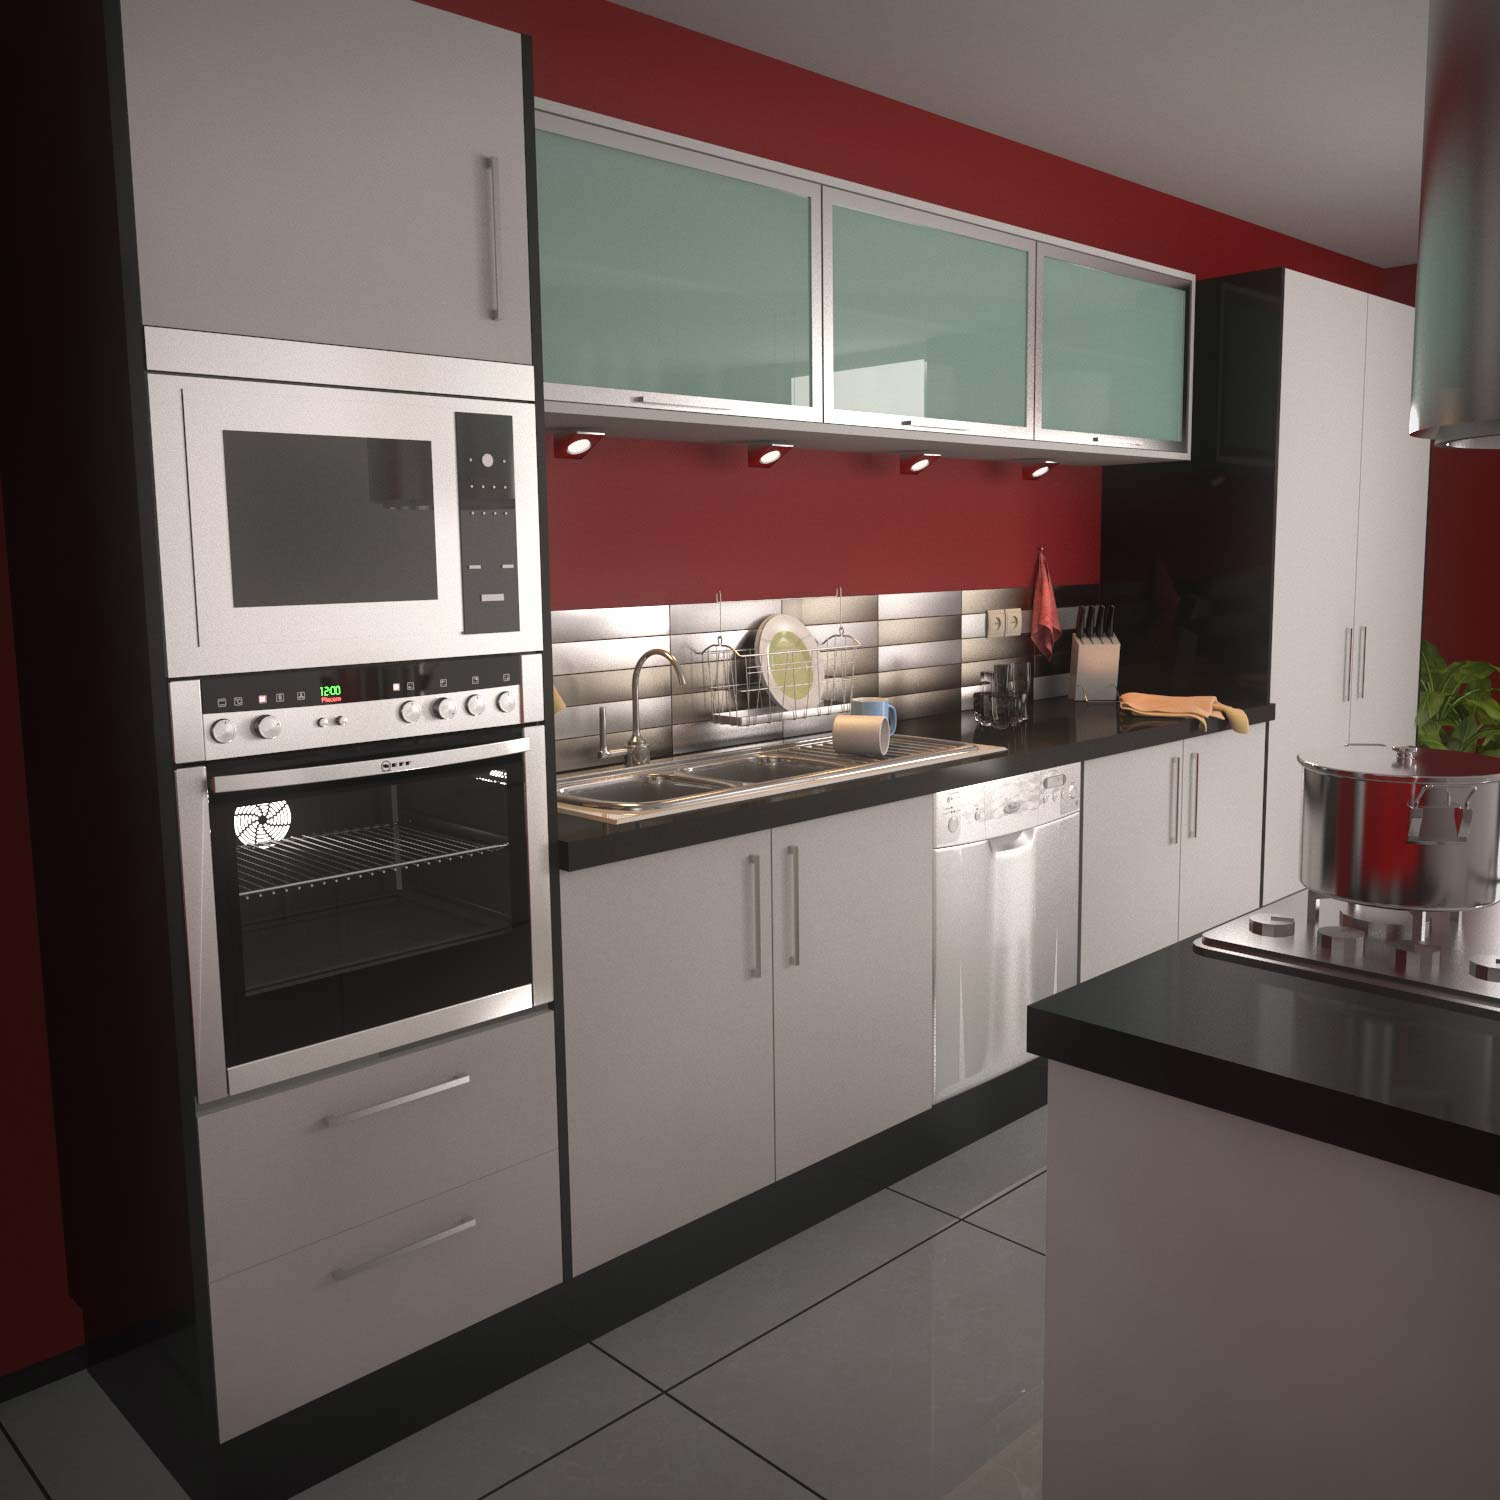 RETOUCHED_KiT_04_OVEN